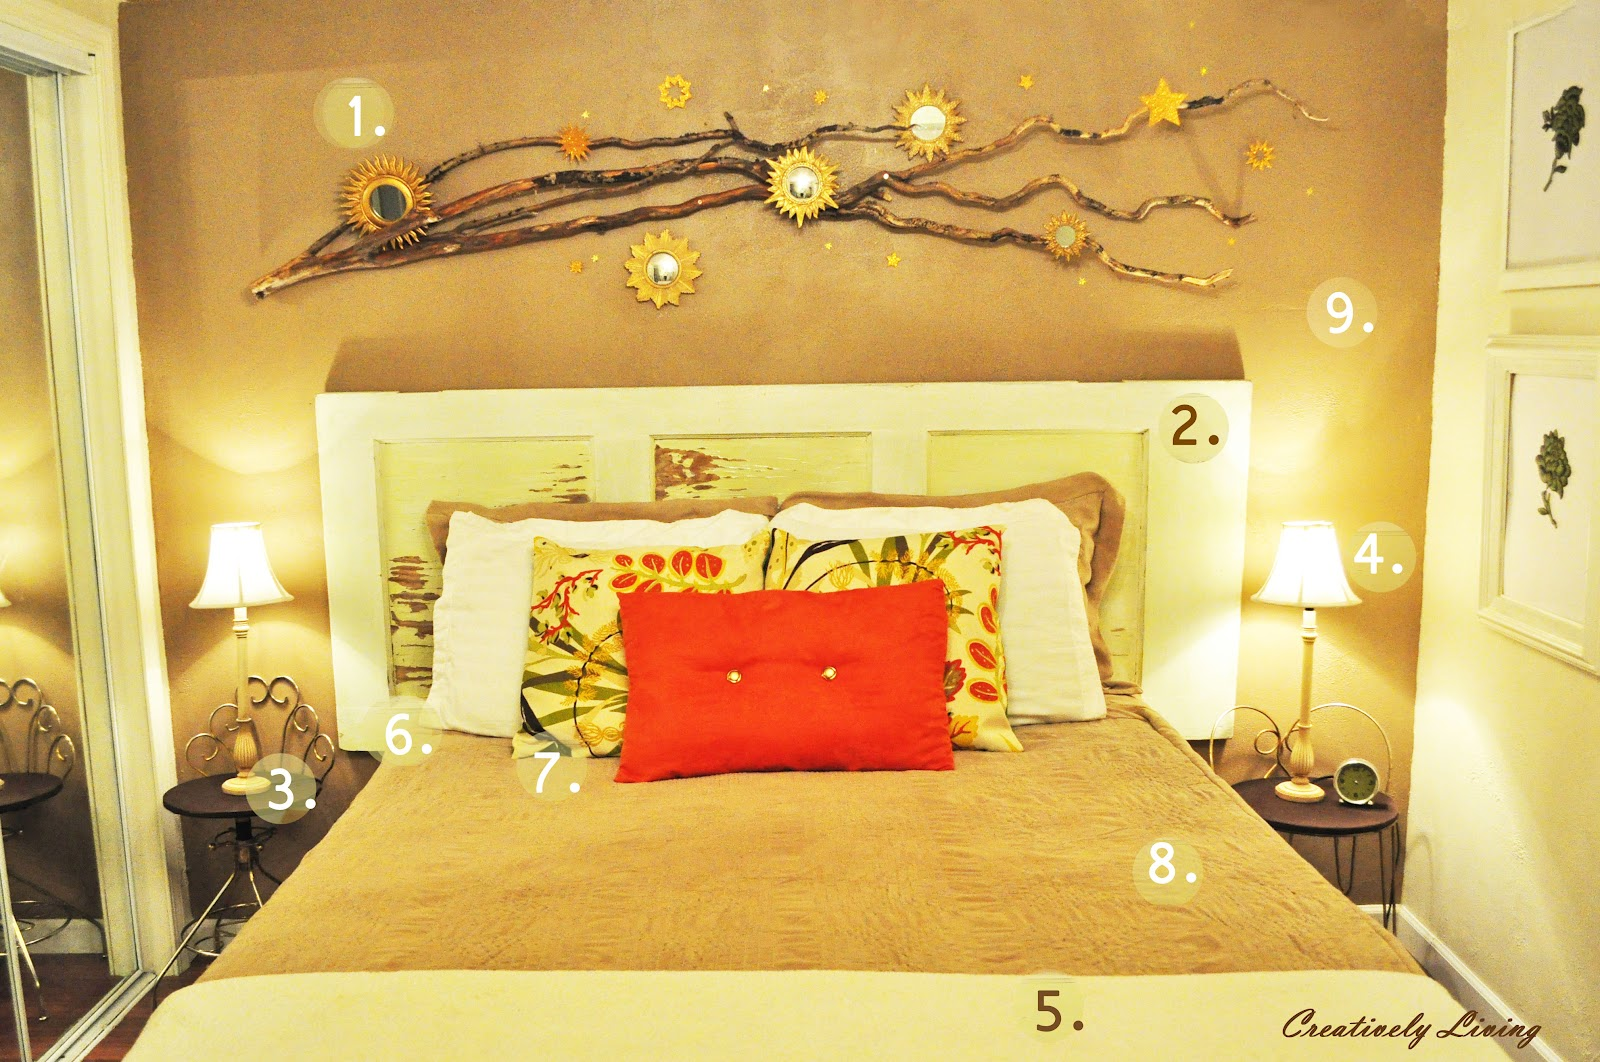 Famous Decorate Bedroom Walls Images - The Wall Art Decorations ...